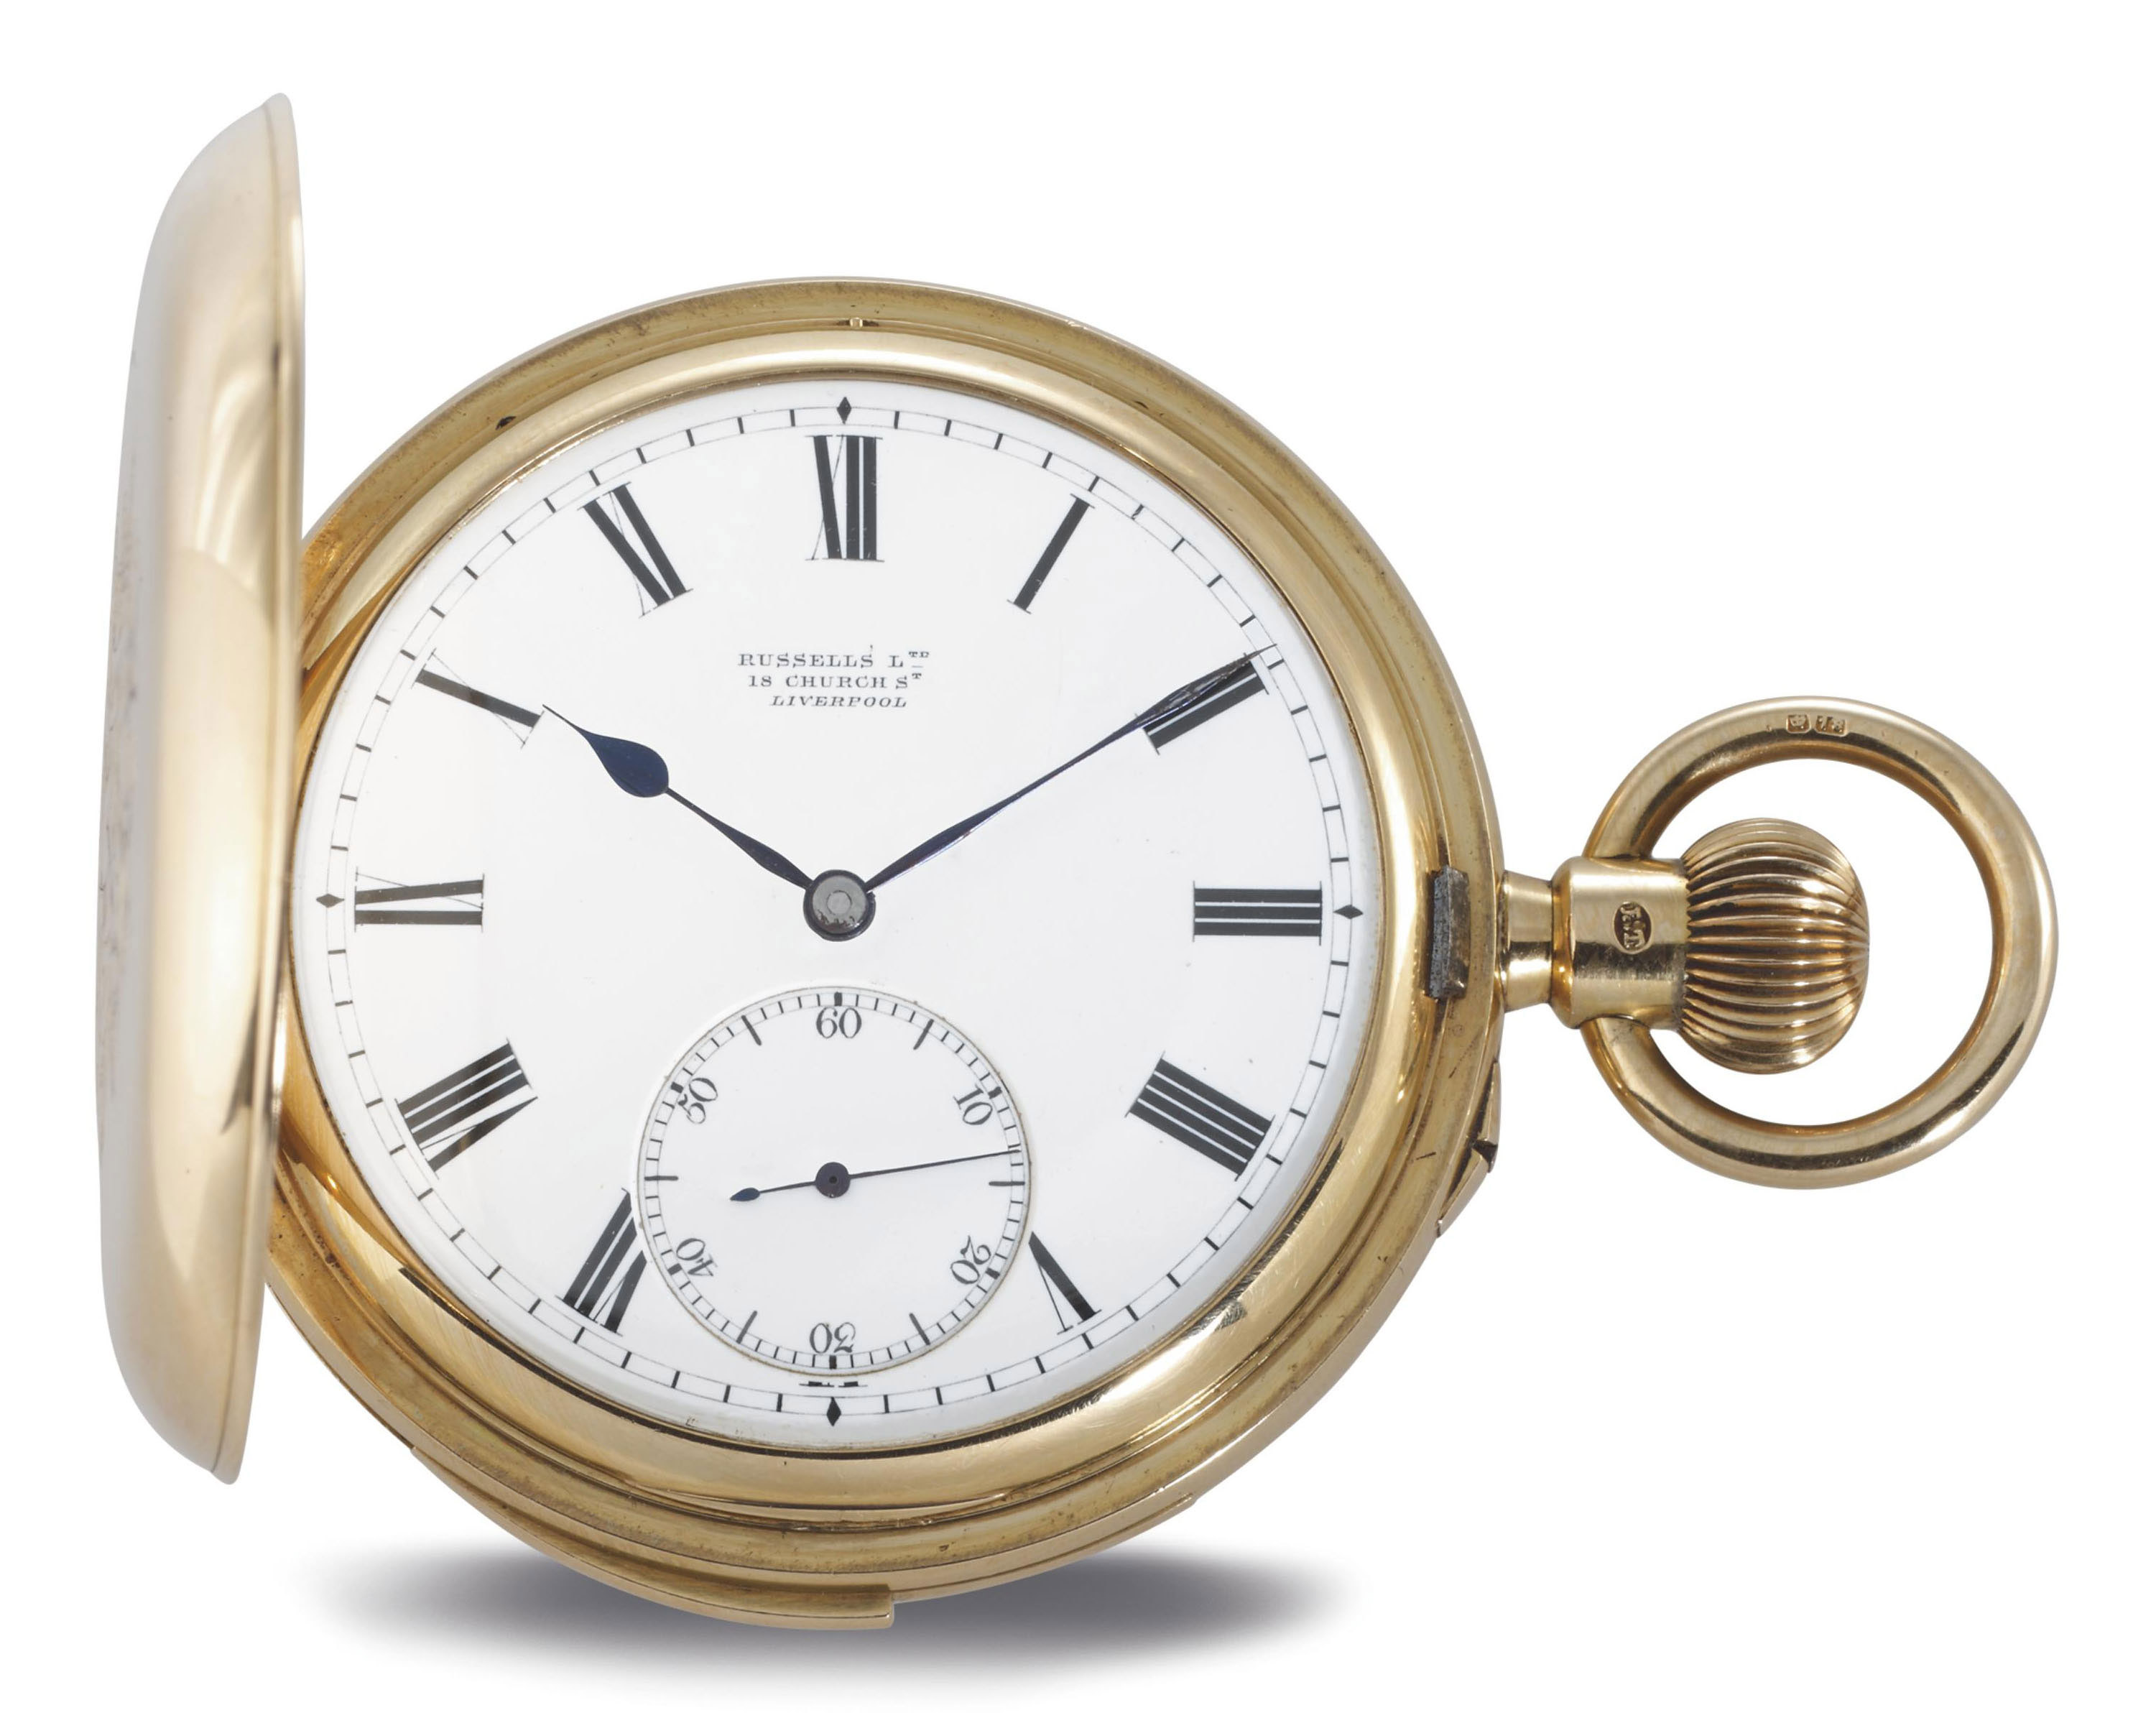 RUSSELL'S LTD. A RARE 18K GOLD HUNTER CASE MINUTE REPEATING KEYLESS LEVER POCKET WATCH WITH PRESENTATION INSCRIPTION